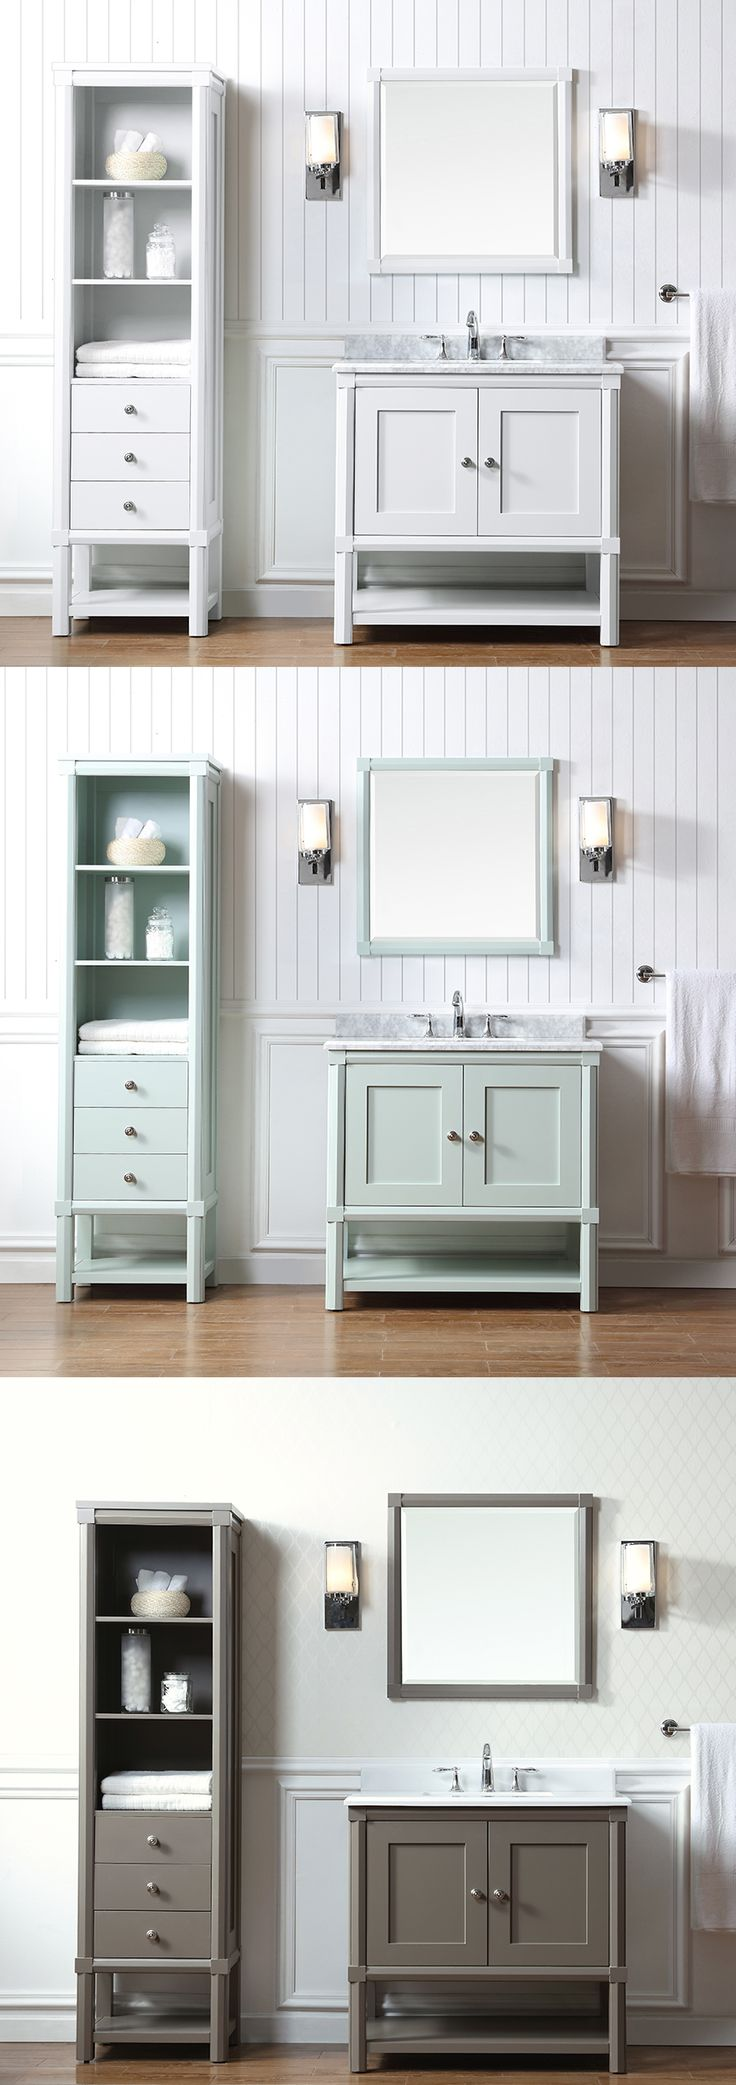 Best Photo Gallery Websites The Martha Stewart Living Sutton Bath Vanity Collection only at es in a variety of colors to match your unique style Start planning your bathroom